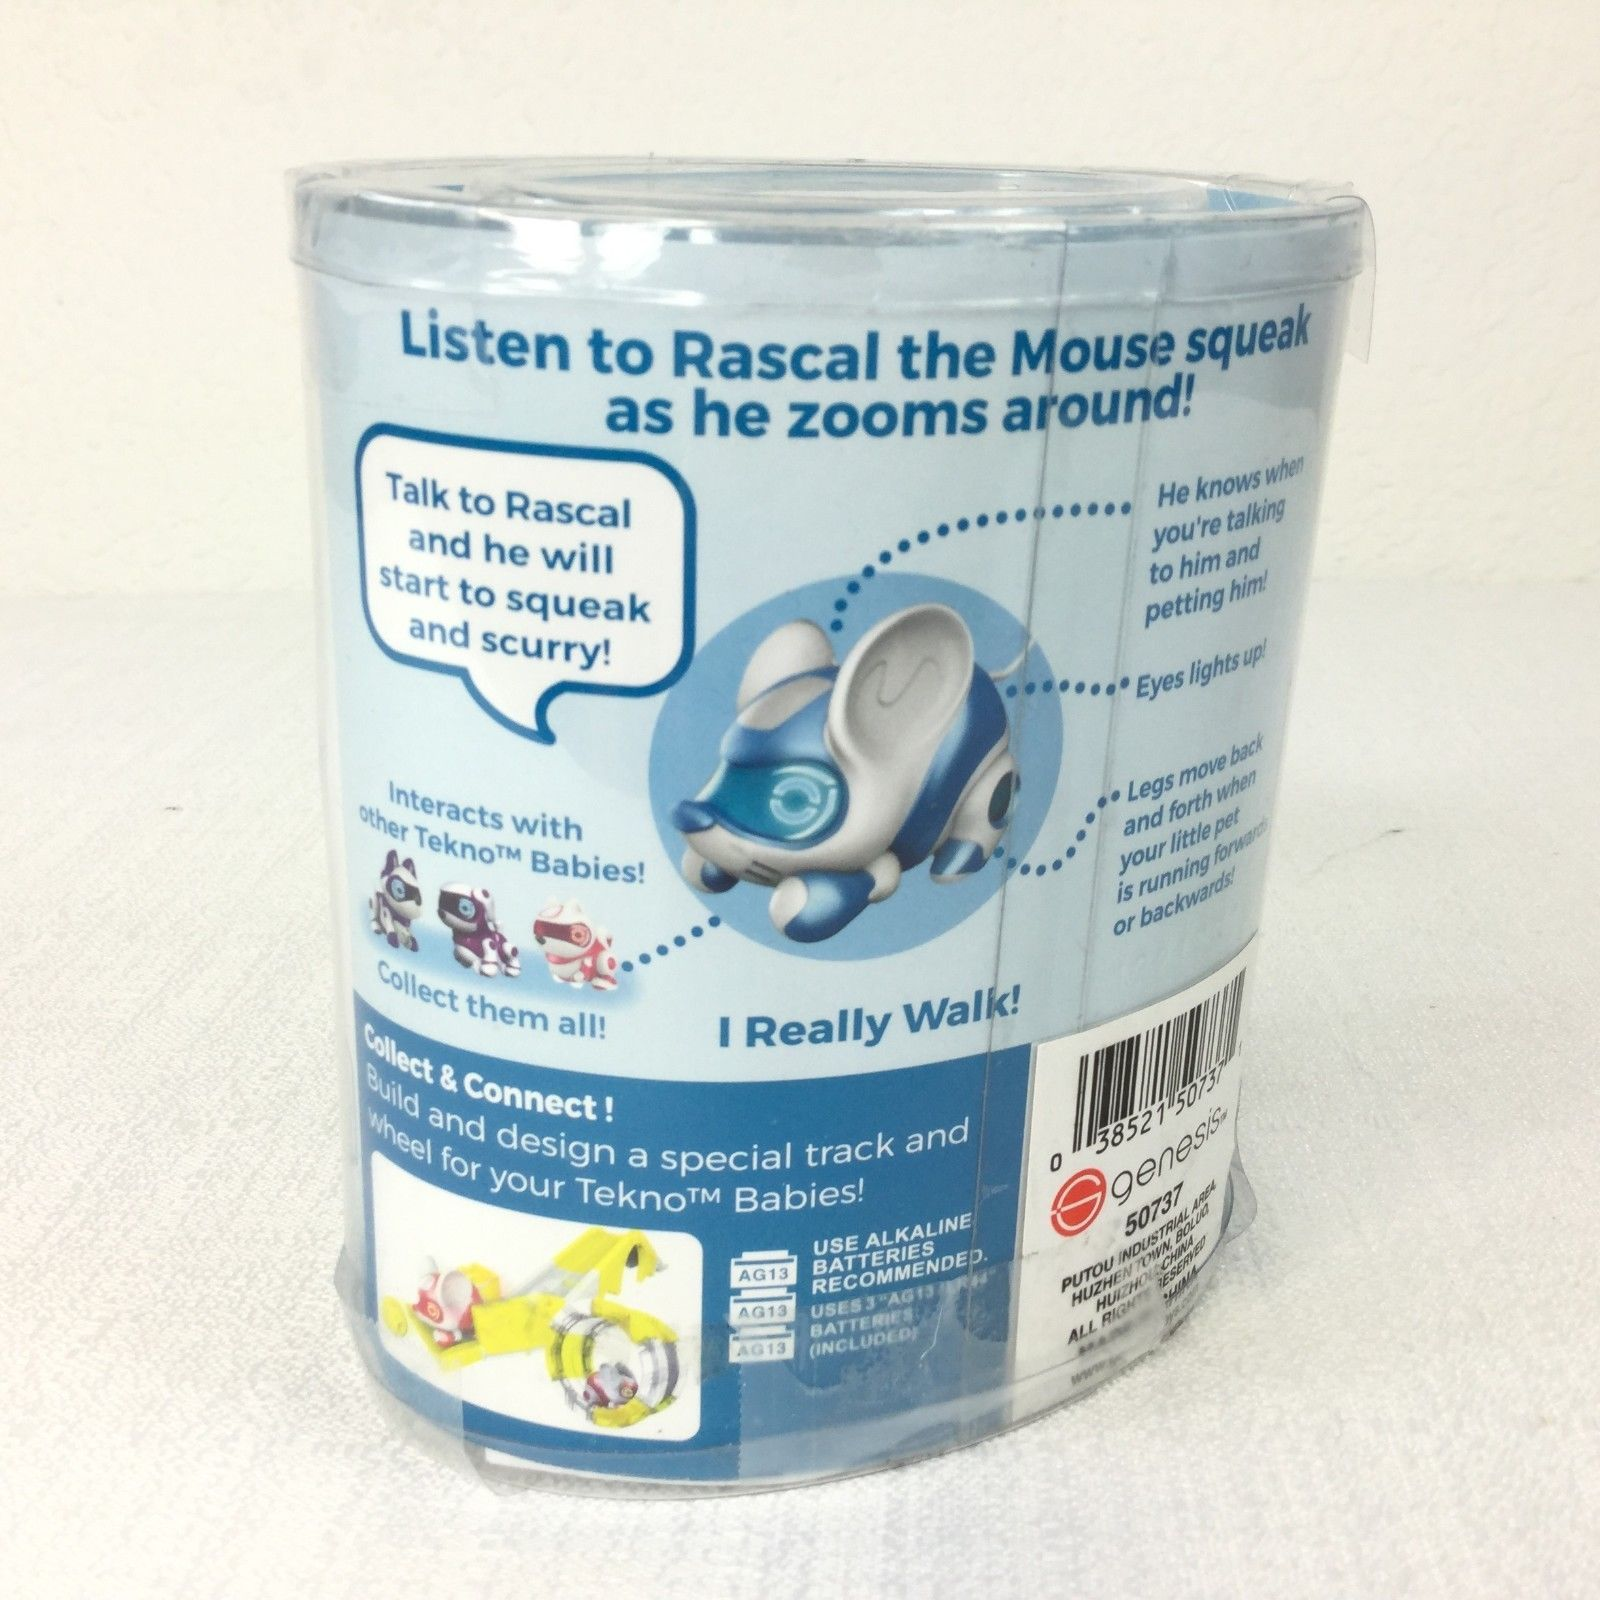 Tekno Babies! Rascal The Mouse Smart/Artificial Intelligence